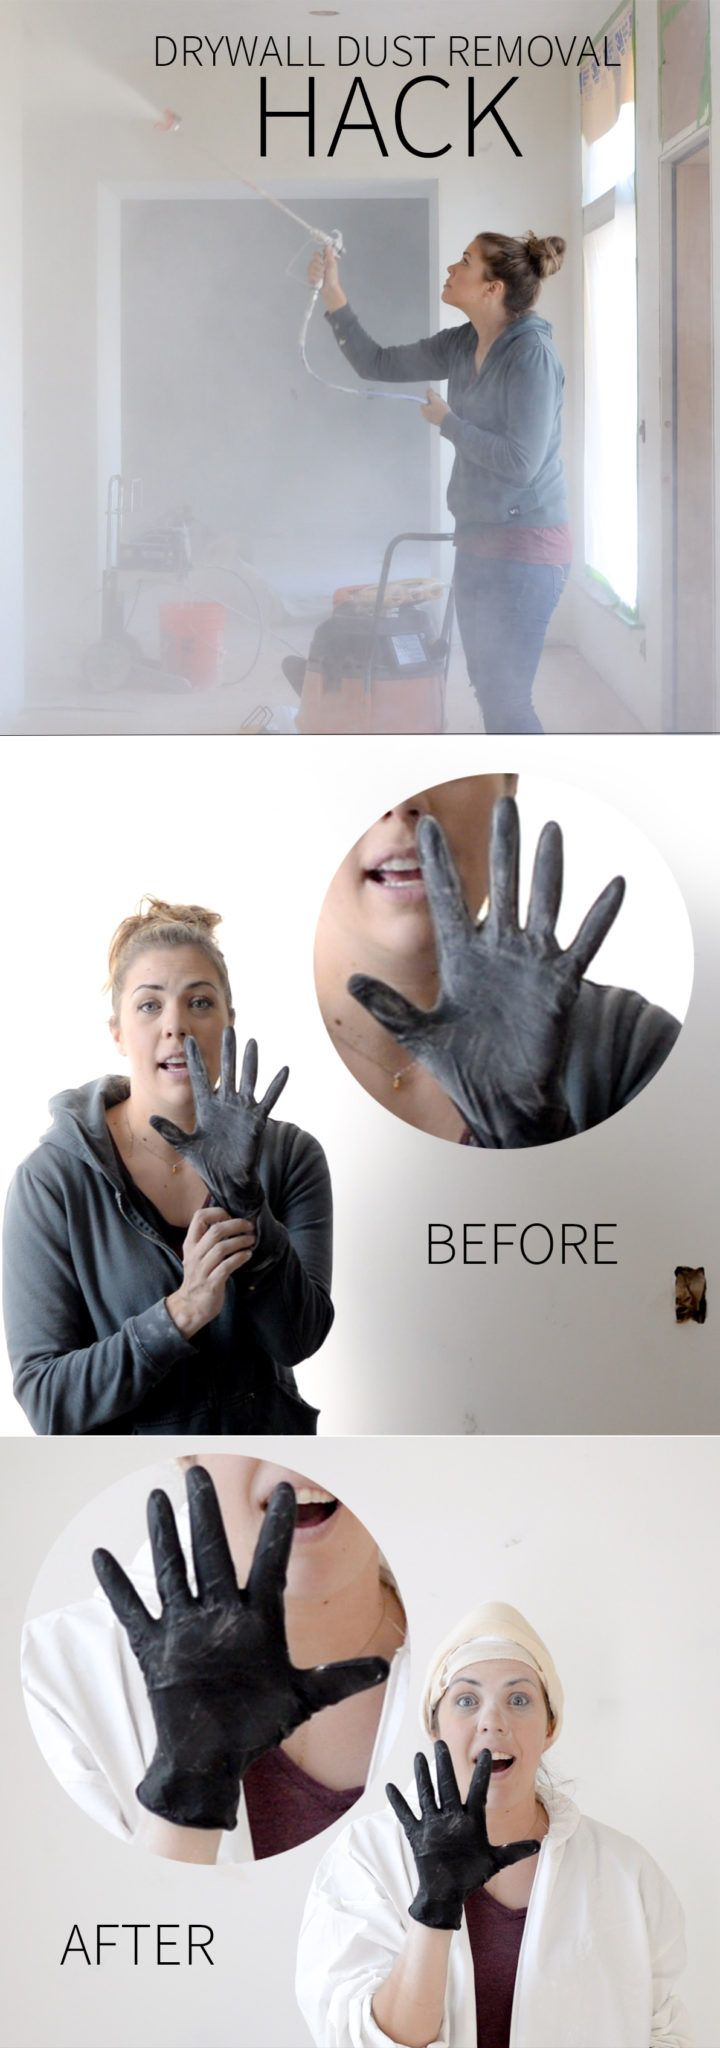 Drywall Dust Removal Hack (That Most Professionals Don't Even Know)